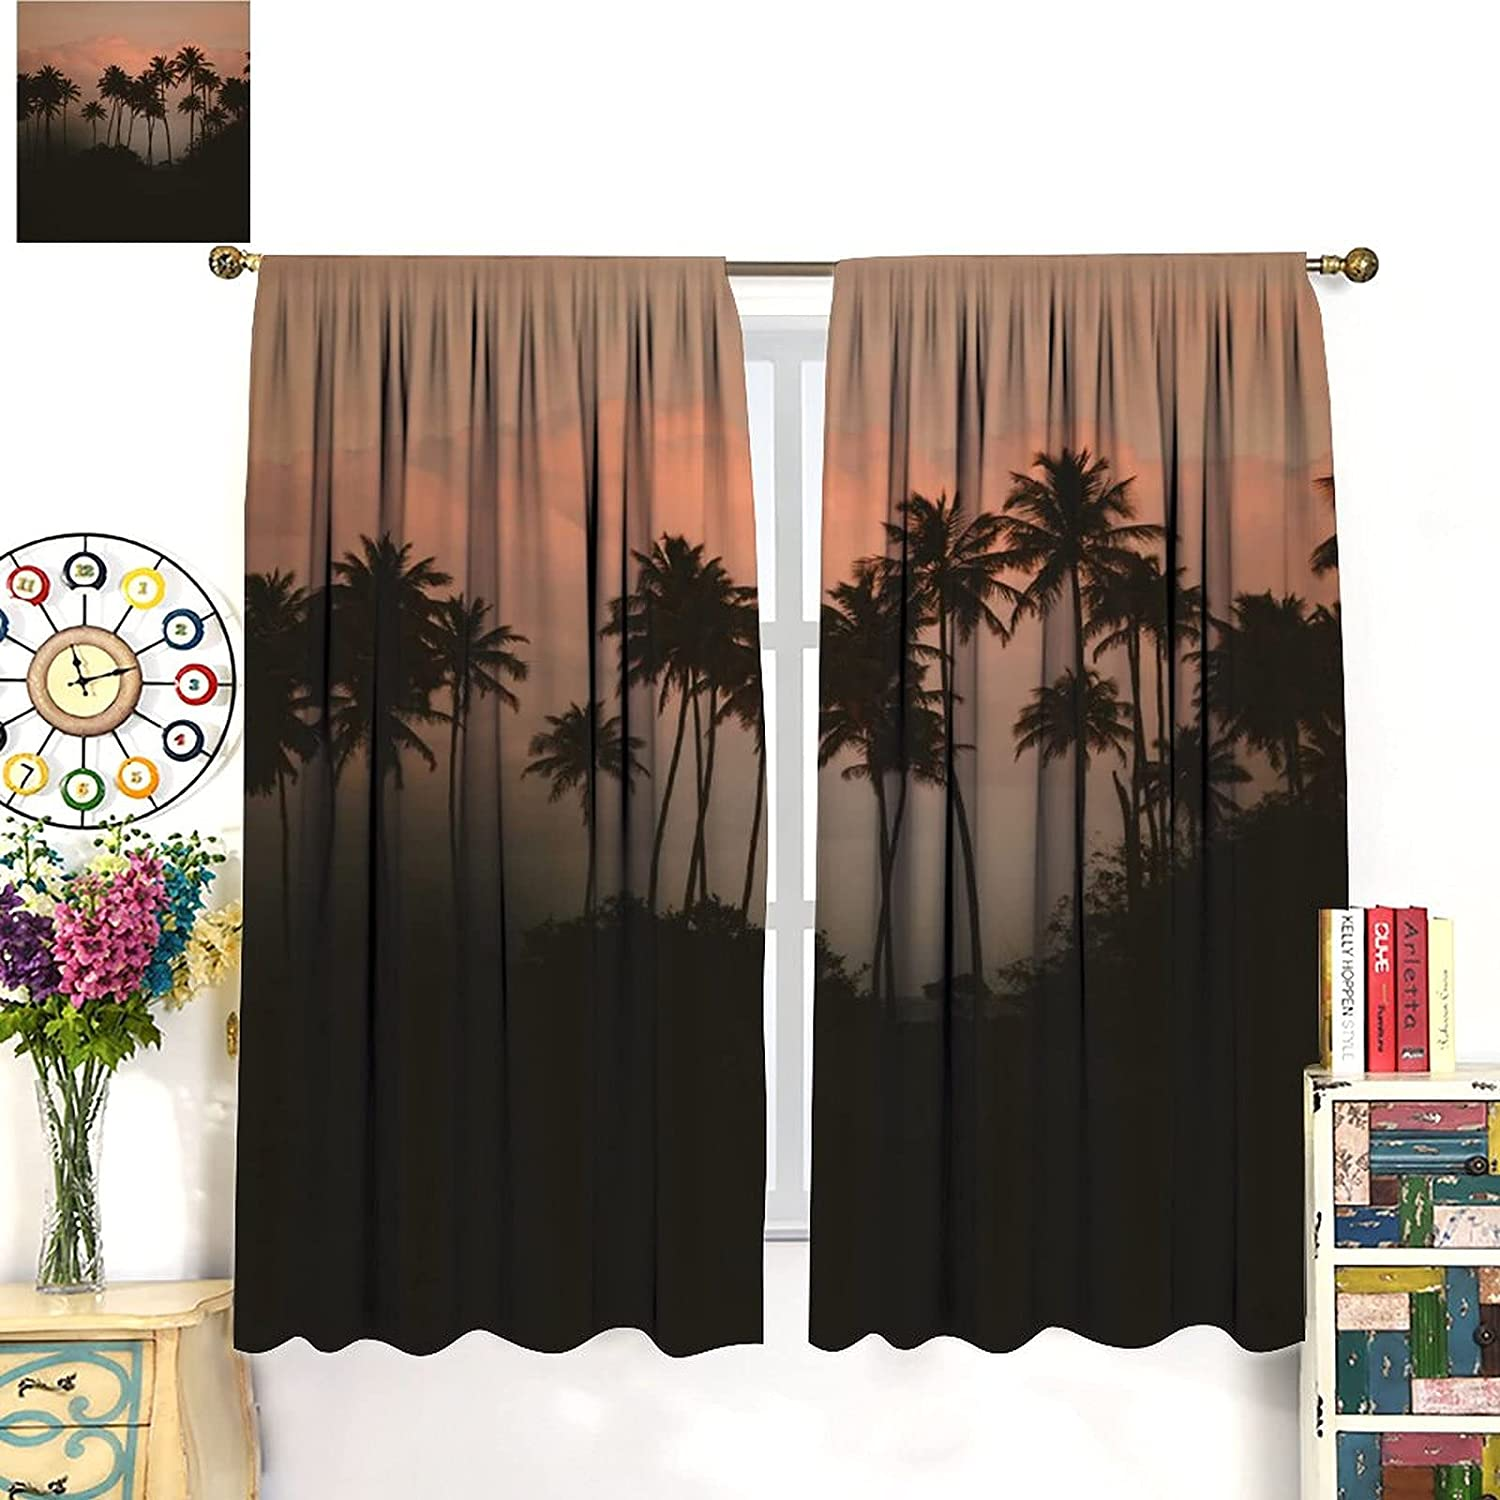 Max 63% OFF Rustic Green Forest Curtains Nature Wo Tree Fog Mountain New products, world's highest quality popular!